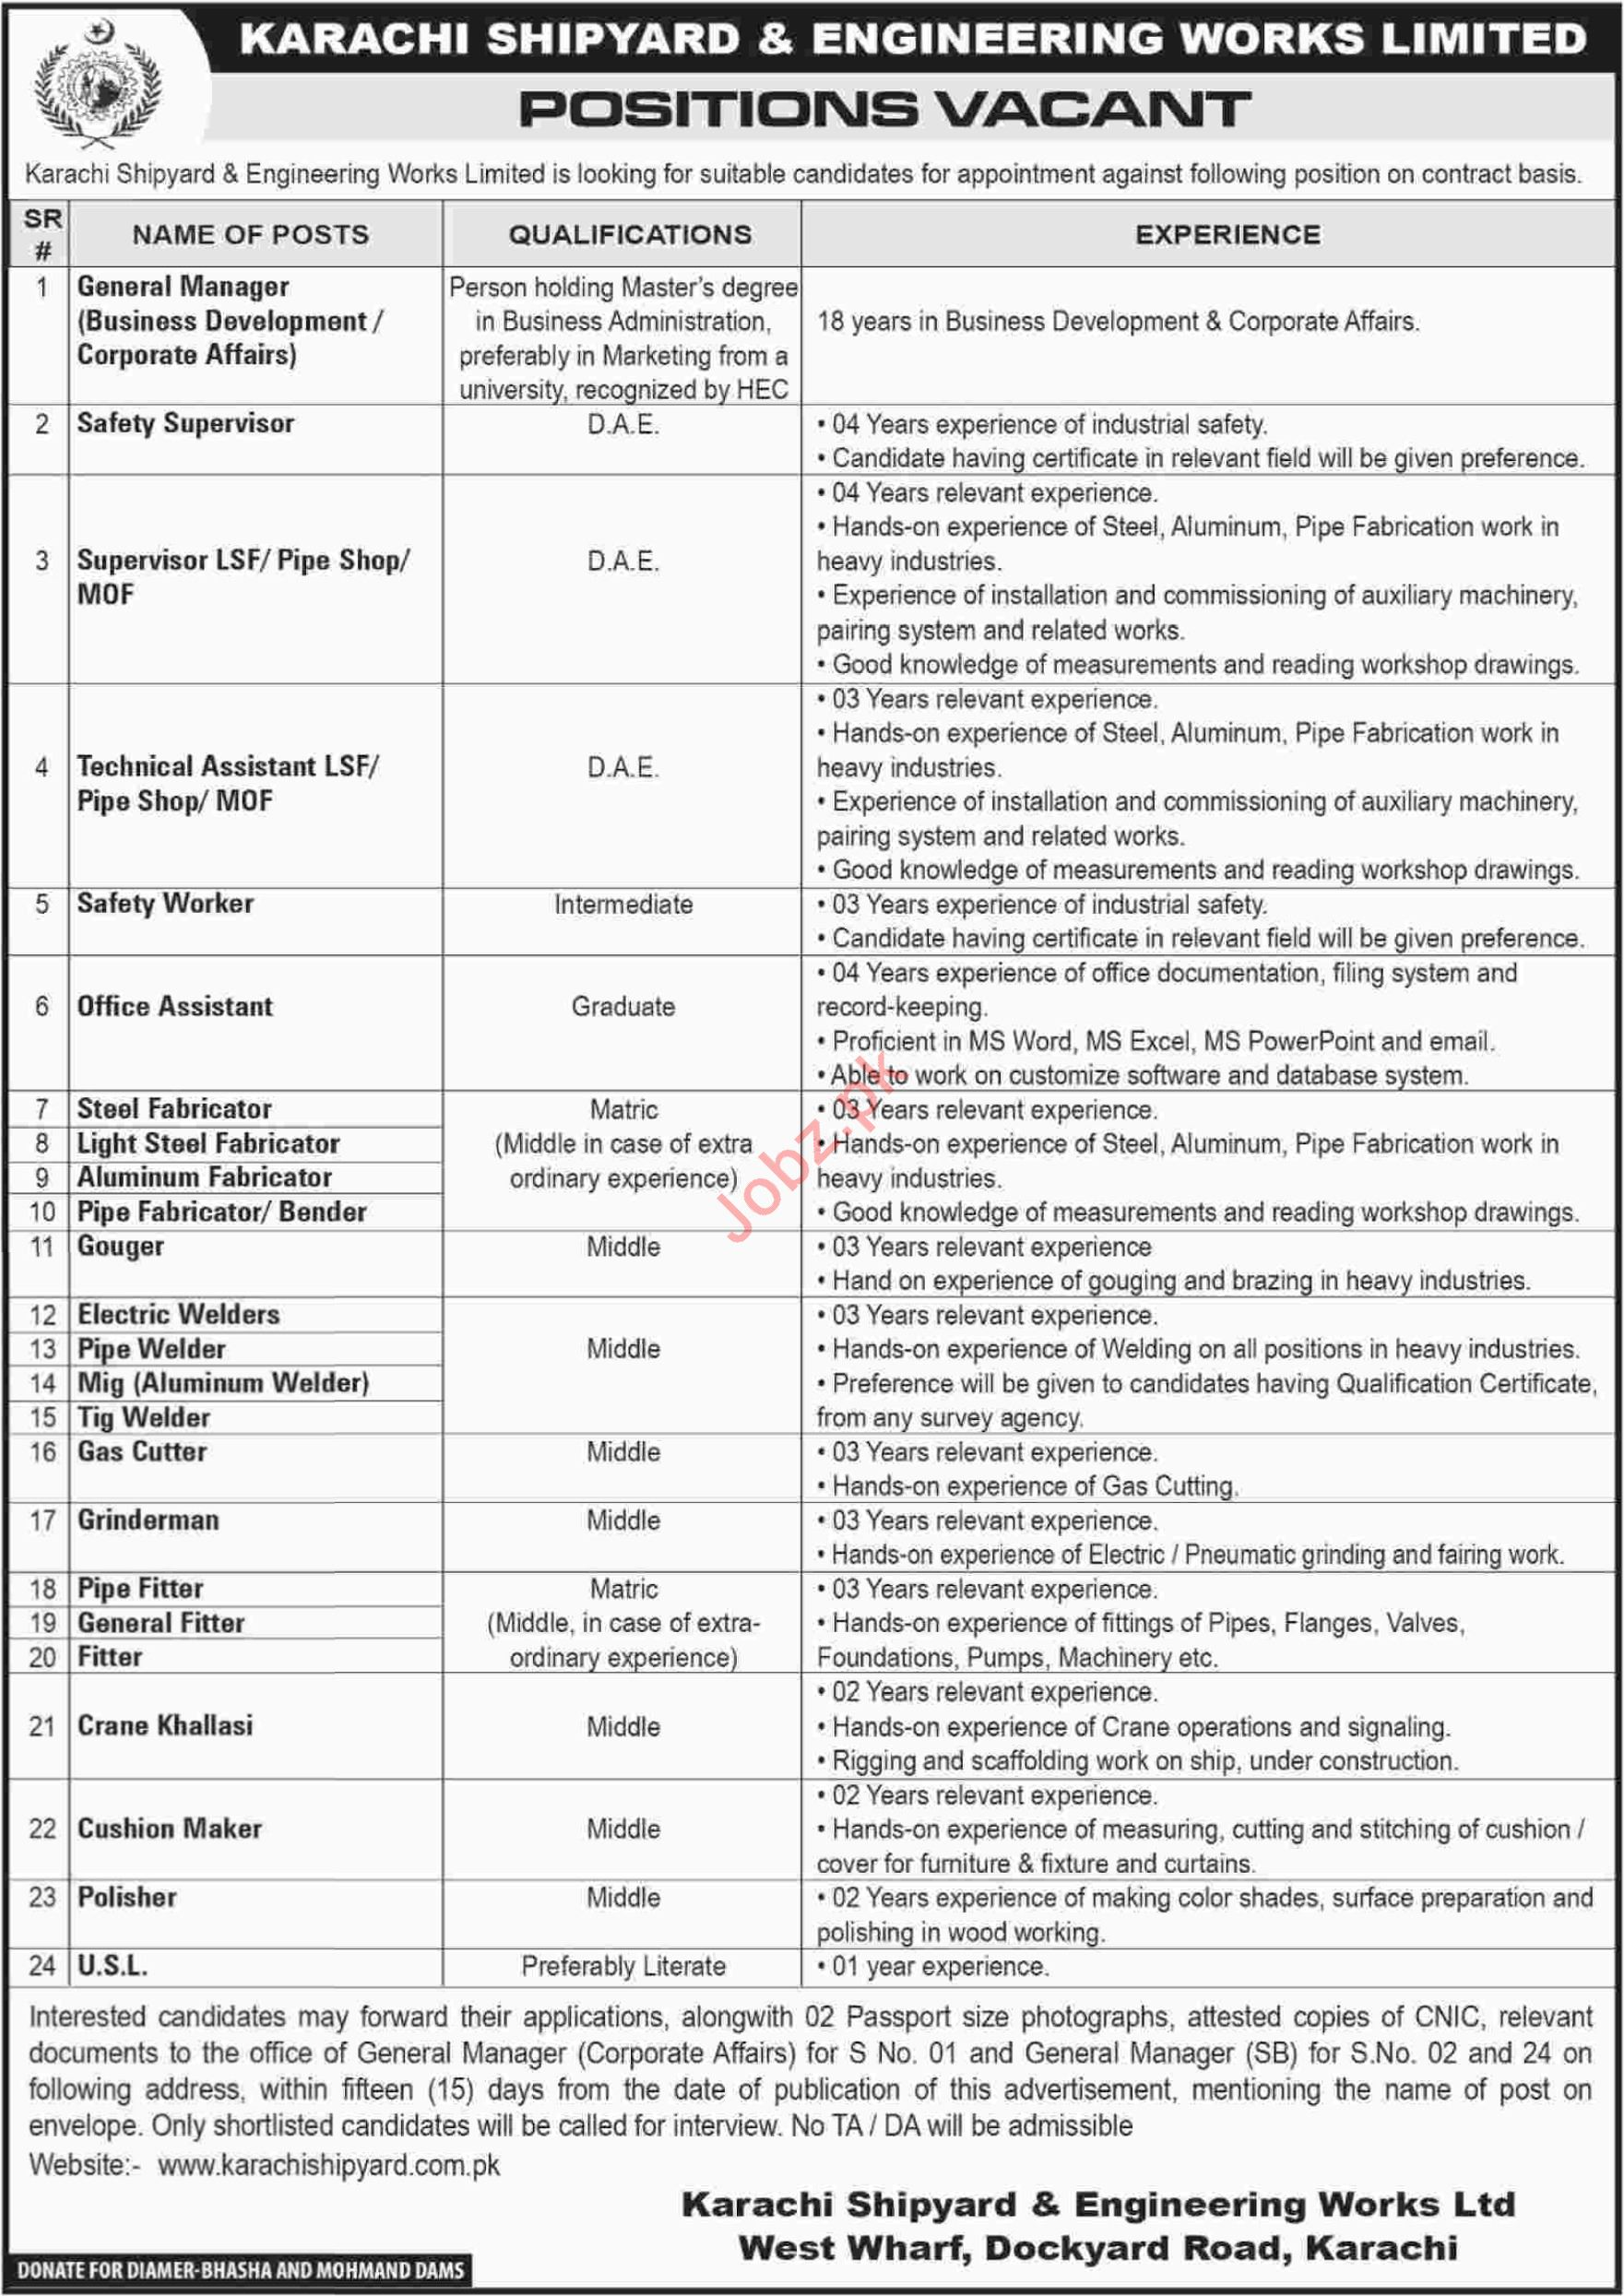 General Manager Business Development Jobs at KSEW